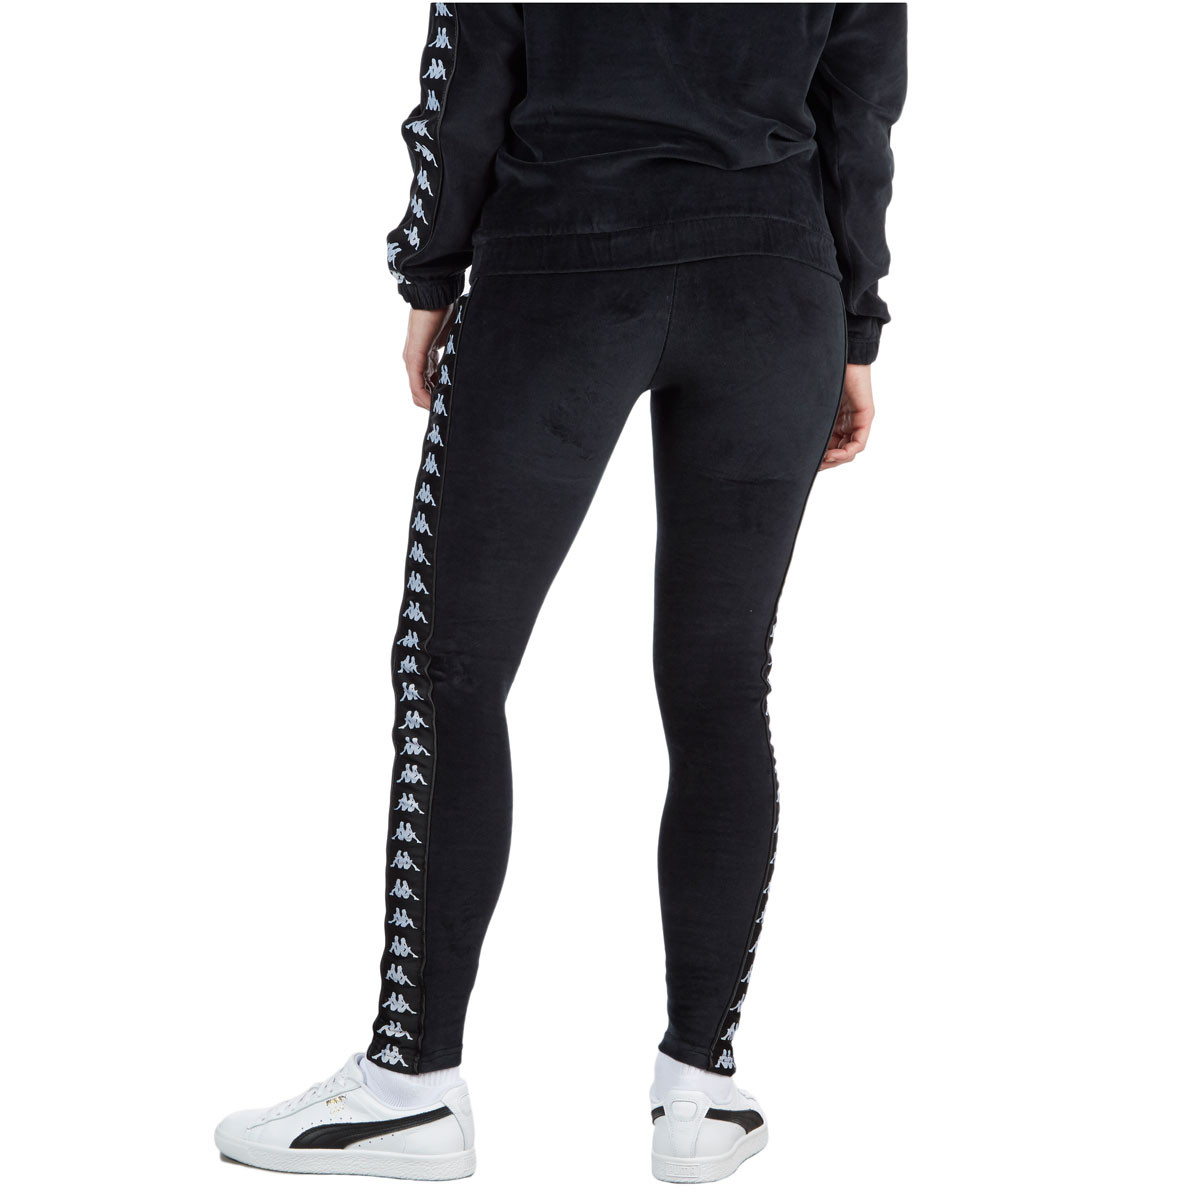 589a38aed7 Kappa Womens Authentic Ammu Sweatpant